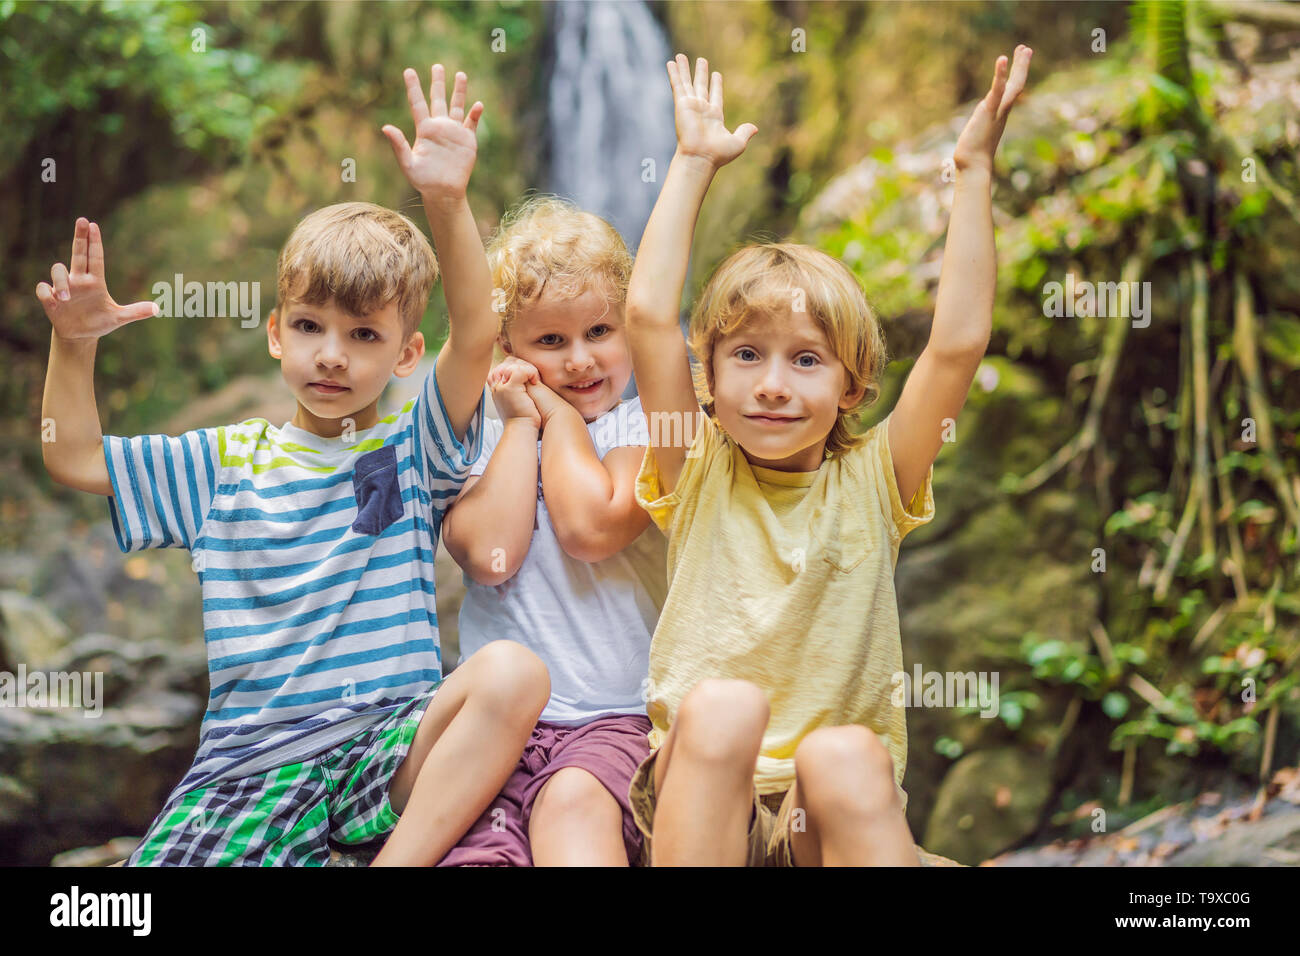 Children rest during a hike in the woods - Stock Image